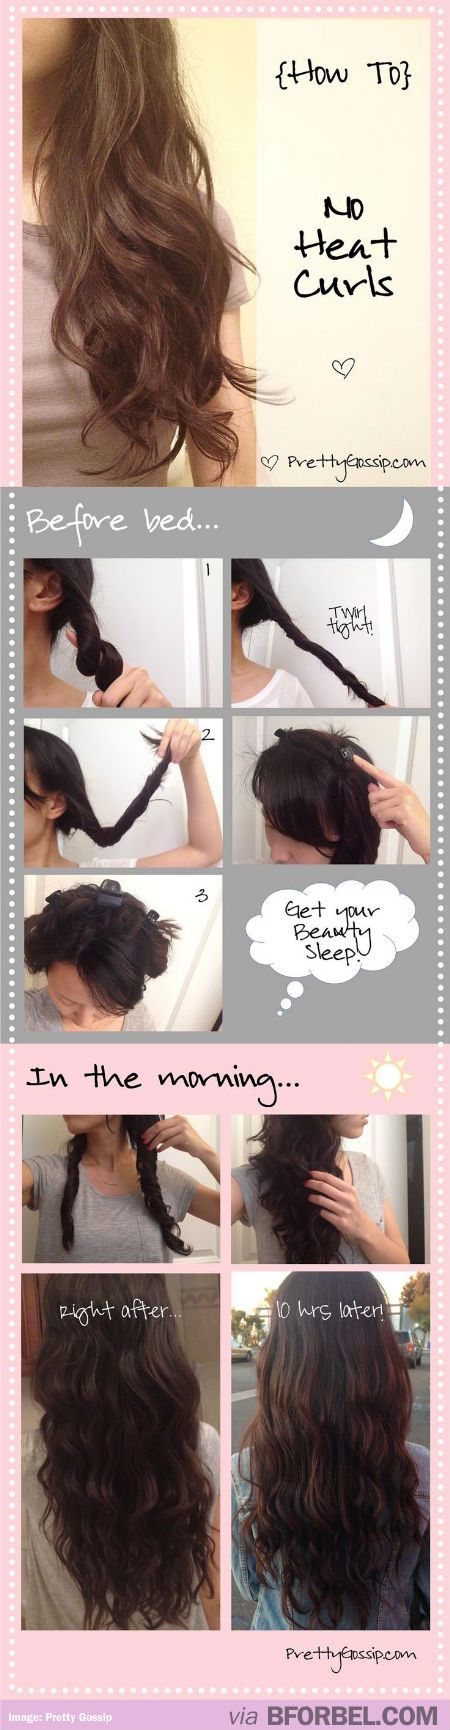 No heat curls you do before bed so more sleep time. Sounds like a dream.